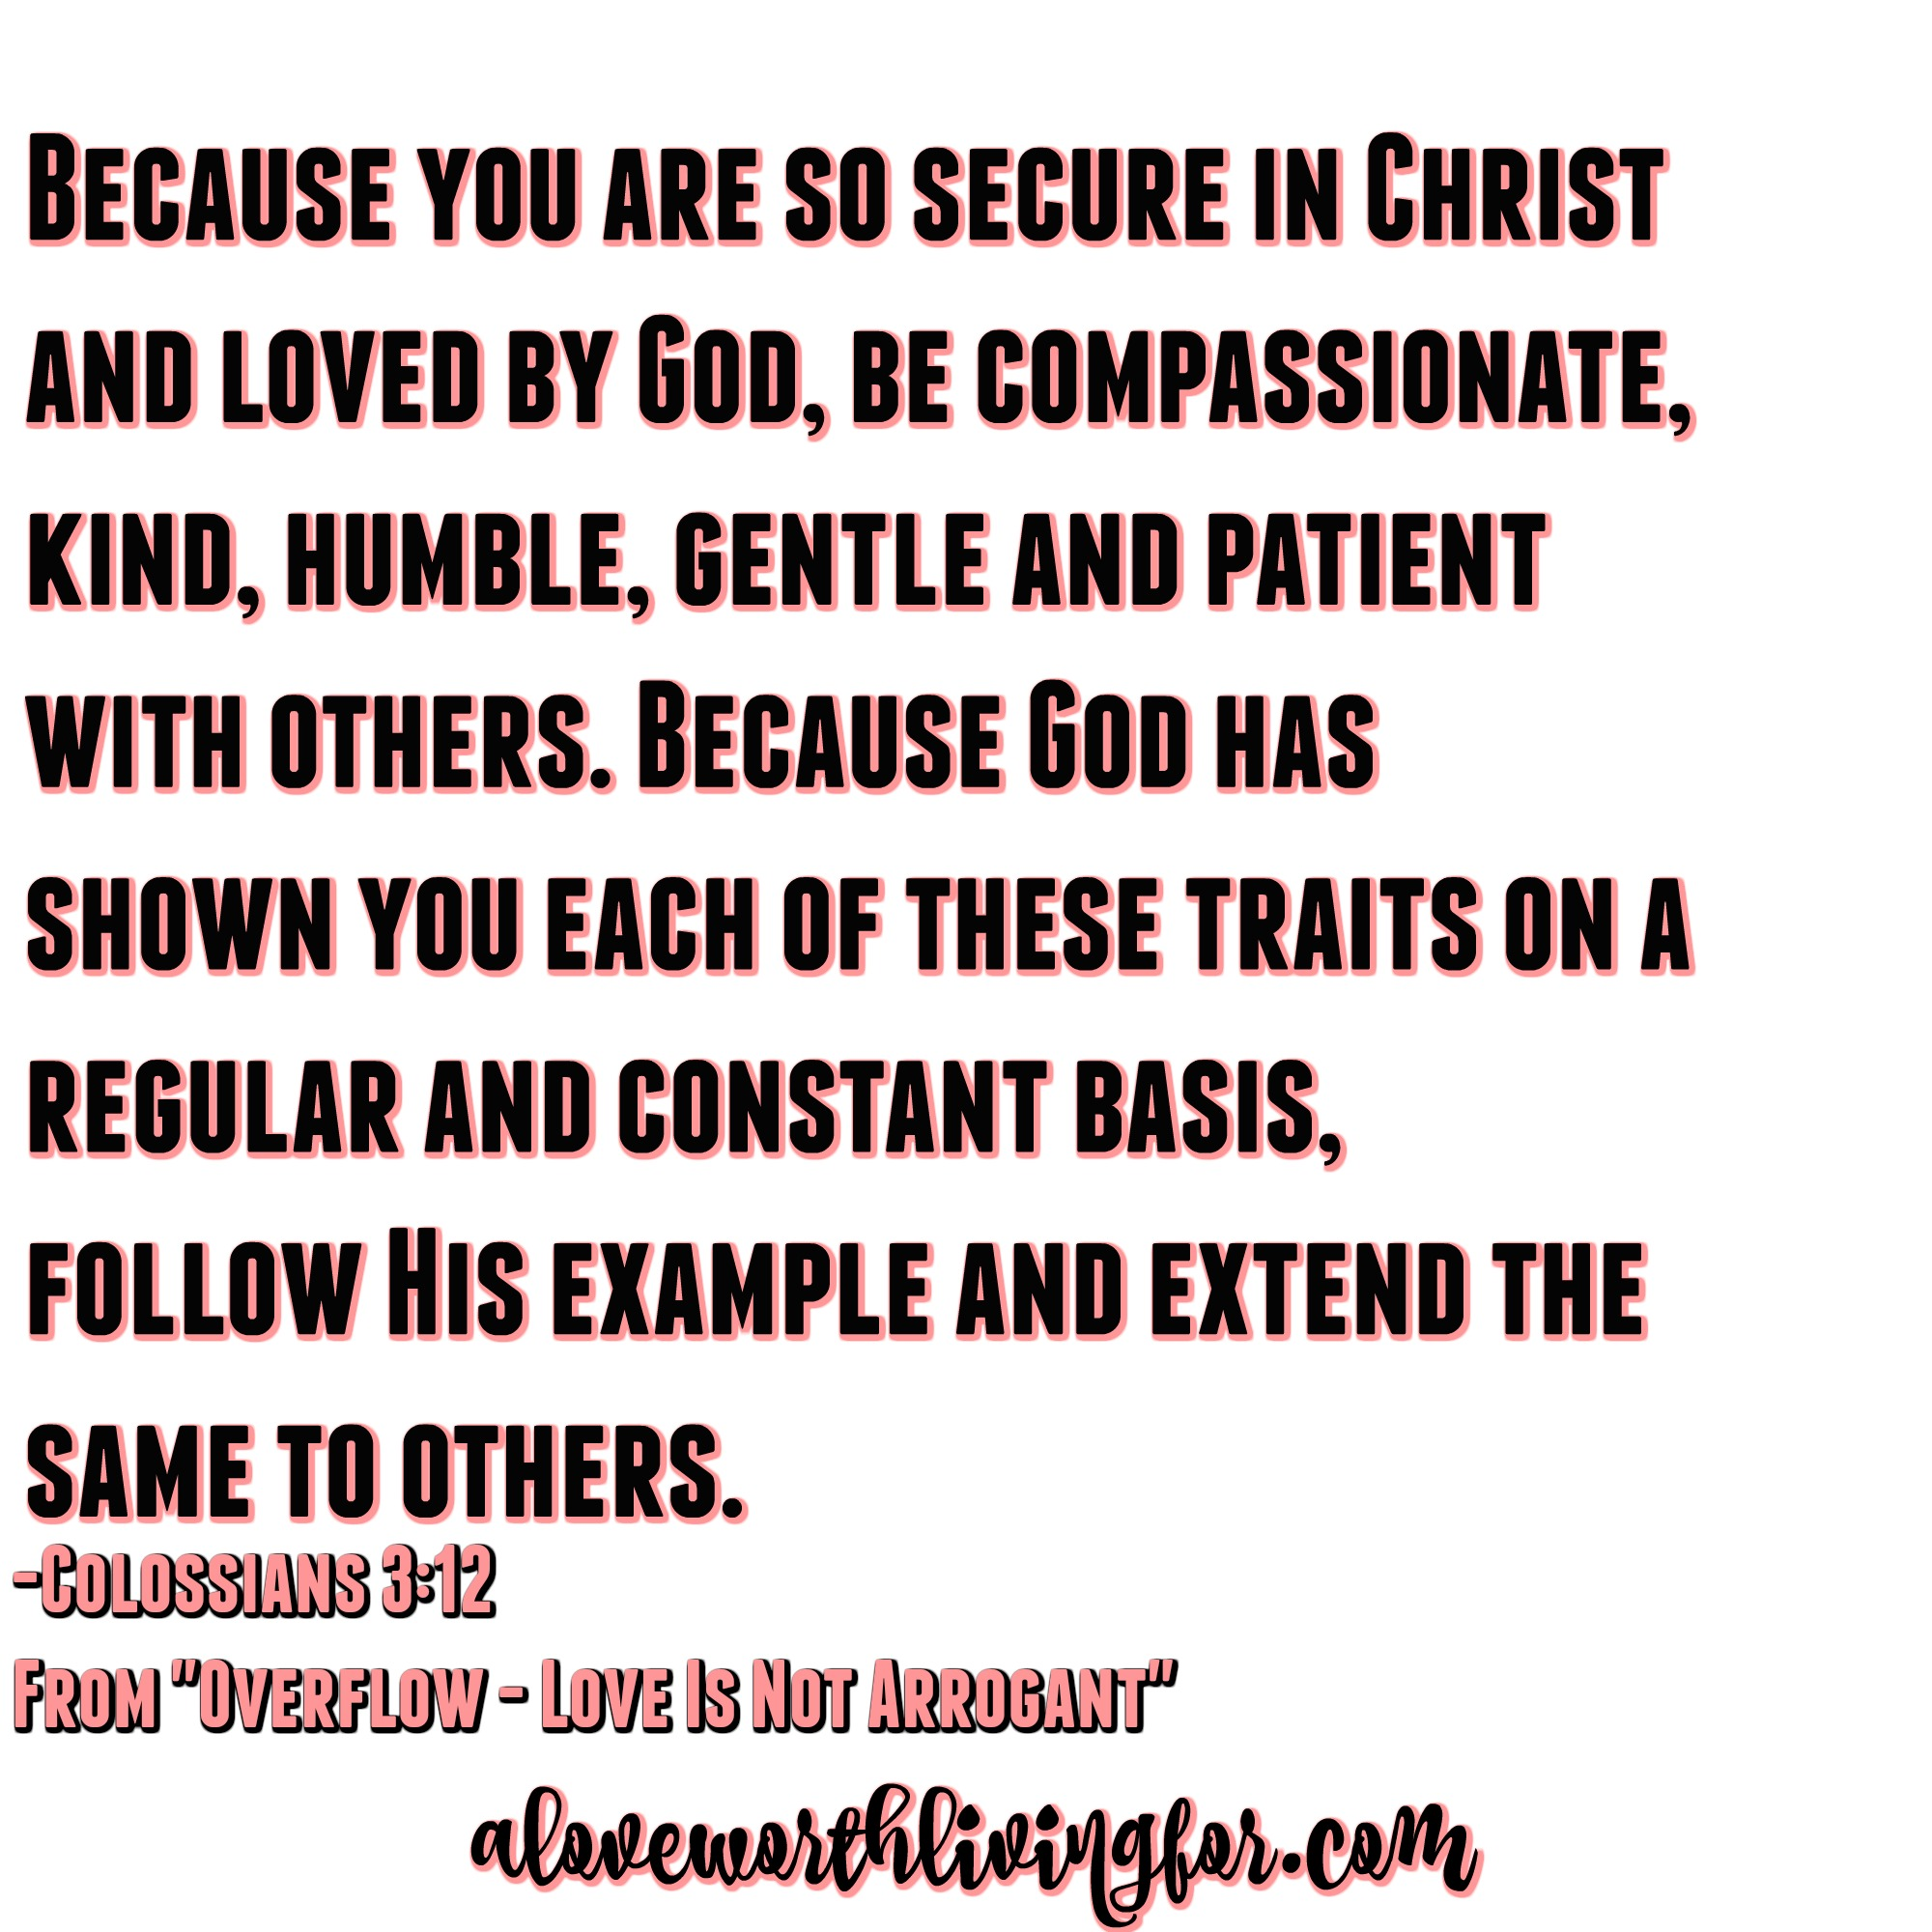 1 Corinthians 13 - What does love look like? Well it is not arrogant and that is a big deal. Here's why.